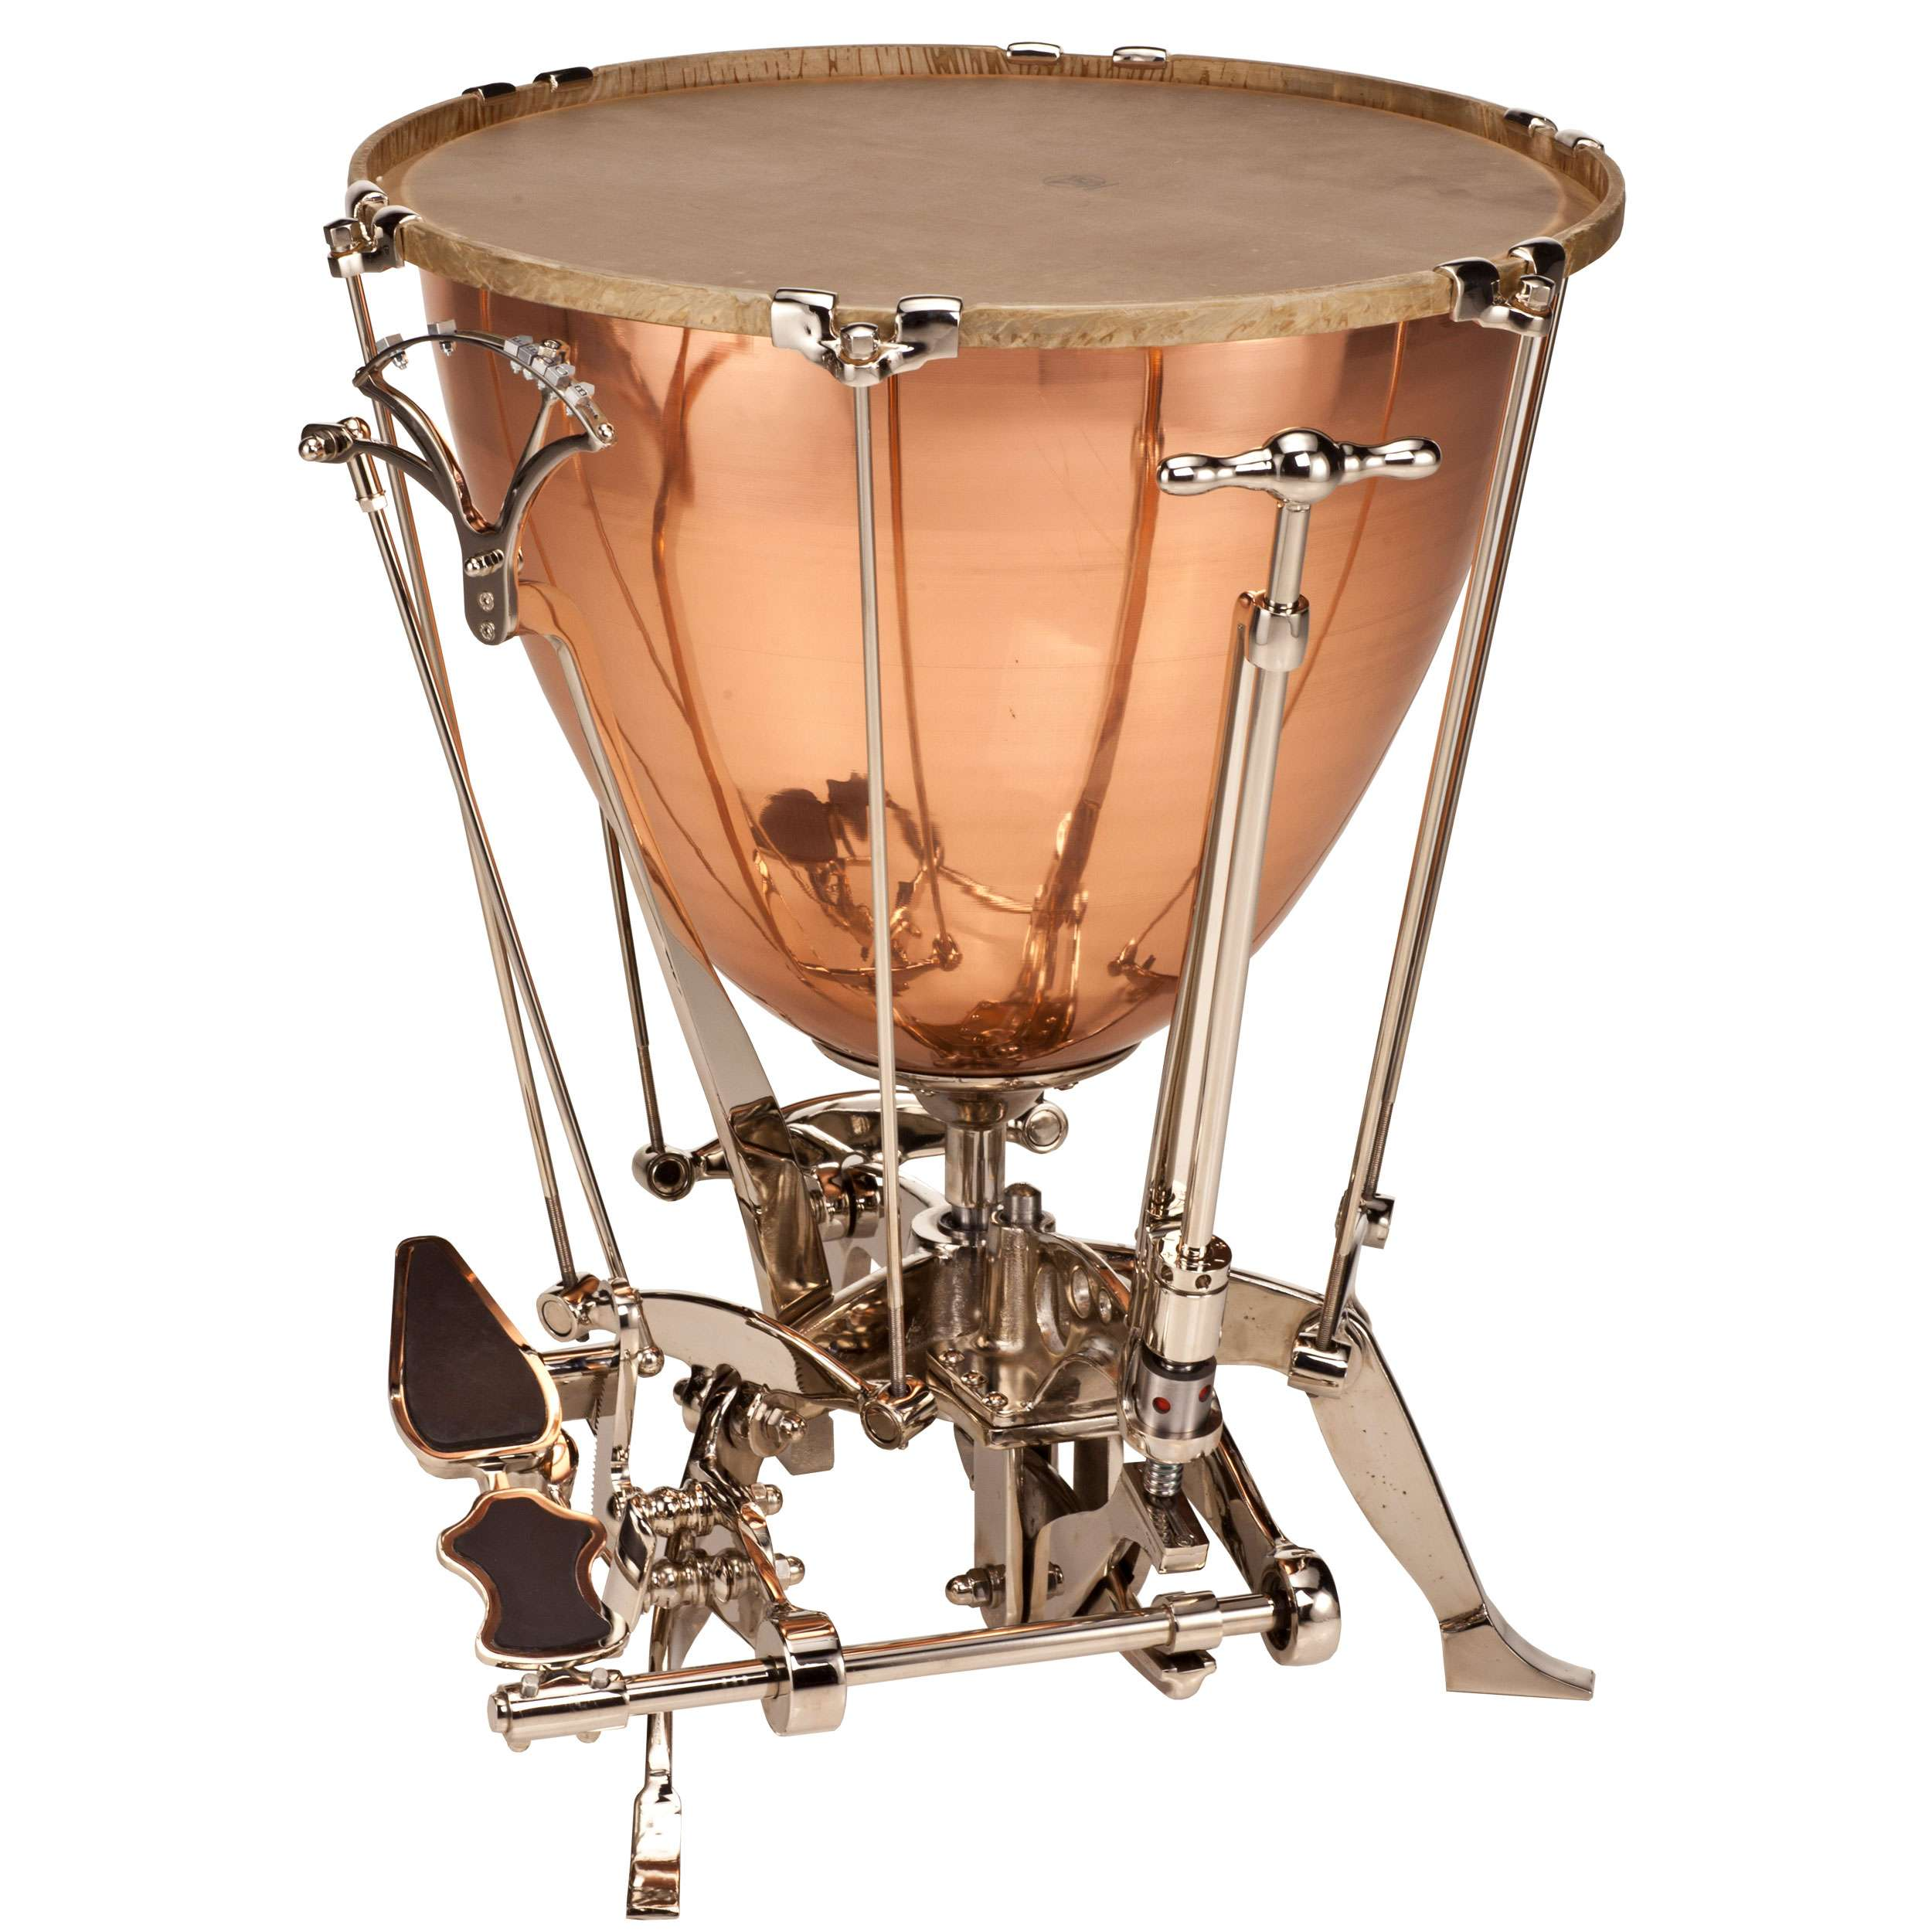 "Adams 26"" Schnellar Timpani with Kurbel (Crank) and Calfskin Head"